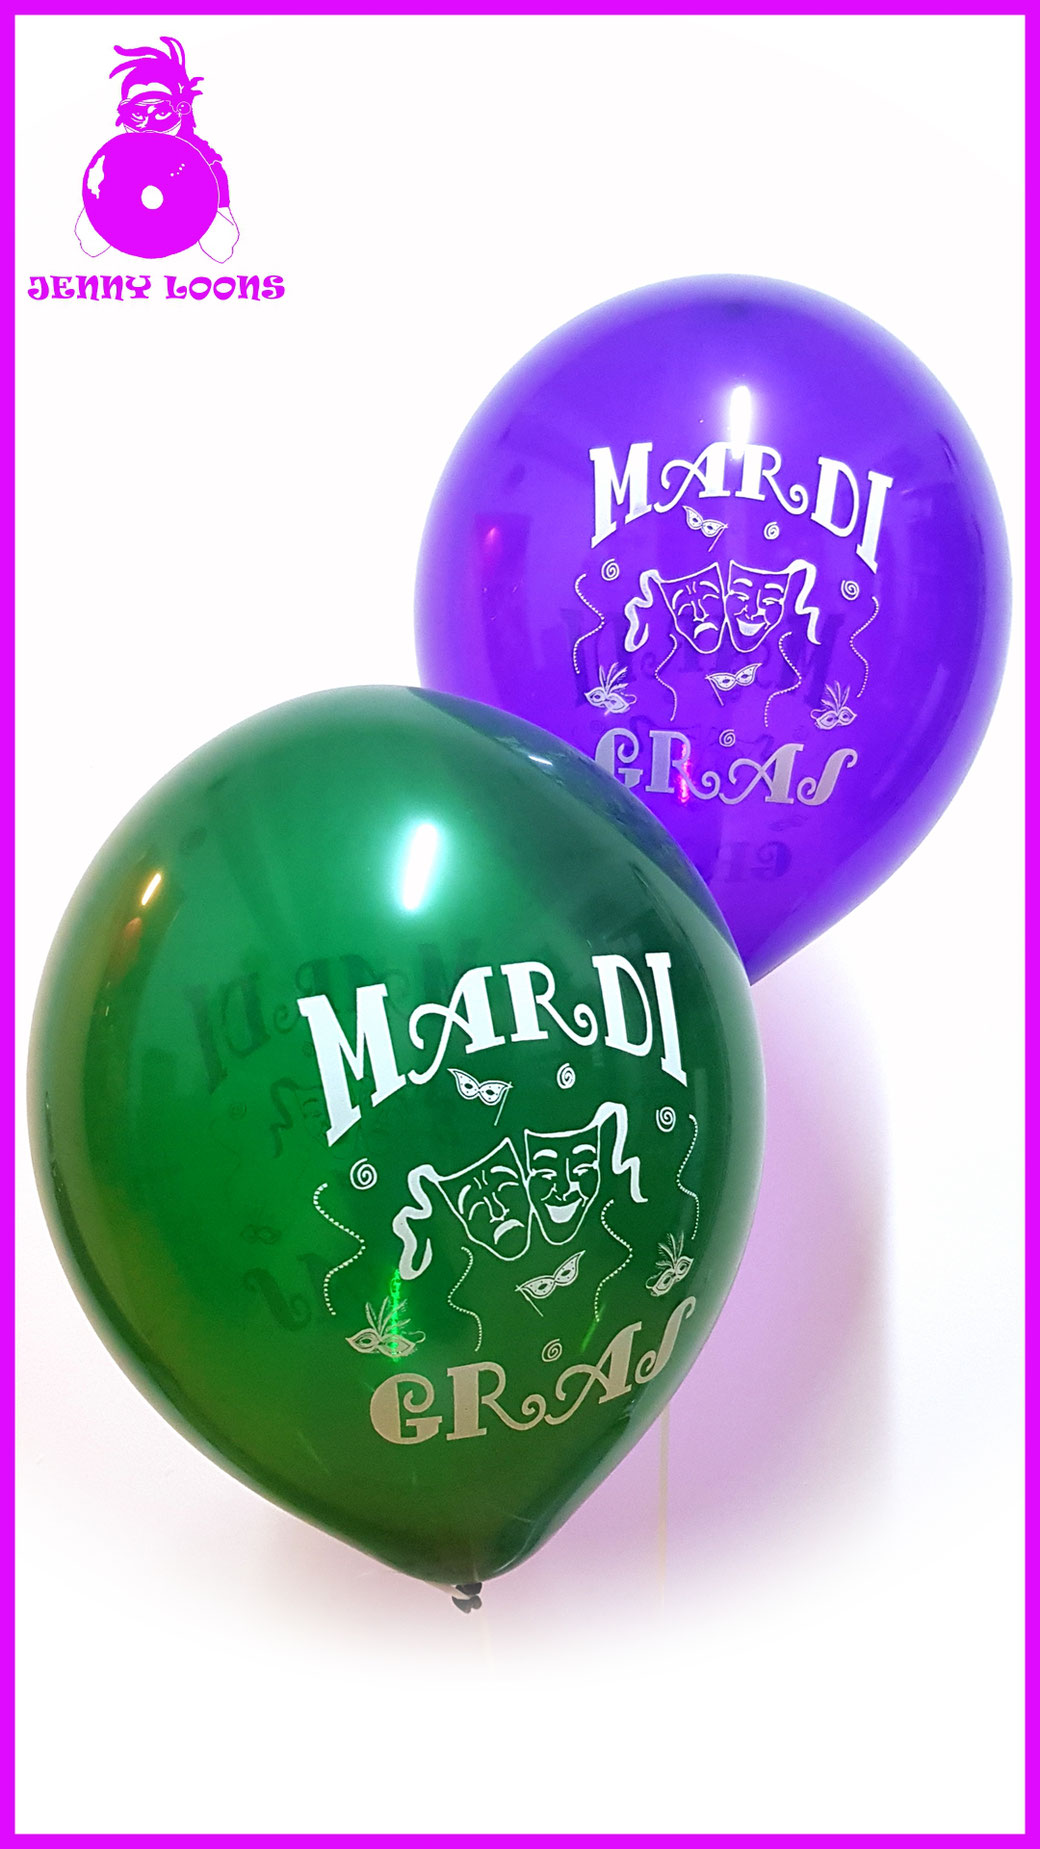 TUFTEX MARDI GRAS Luftballon Balloon grün lila gelb kristall green purple yellow crystal